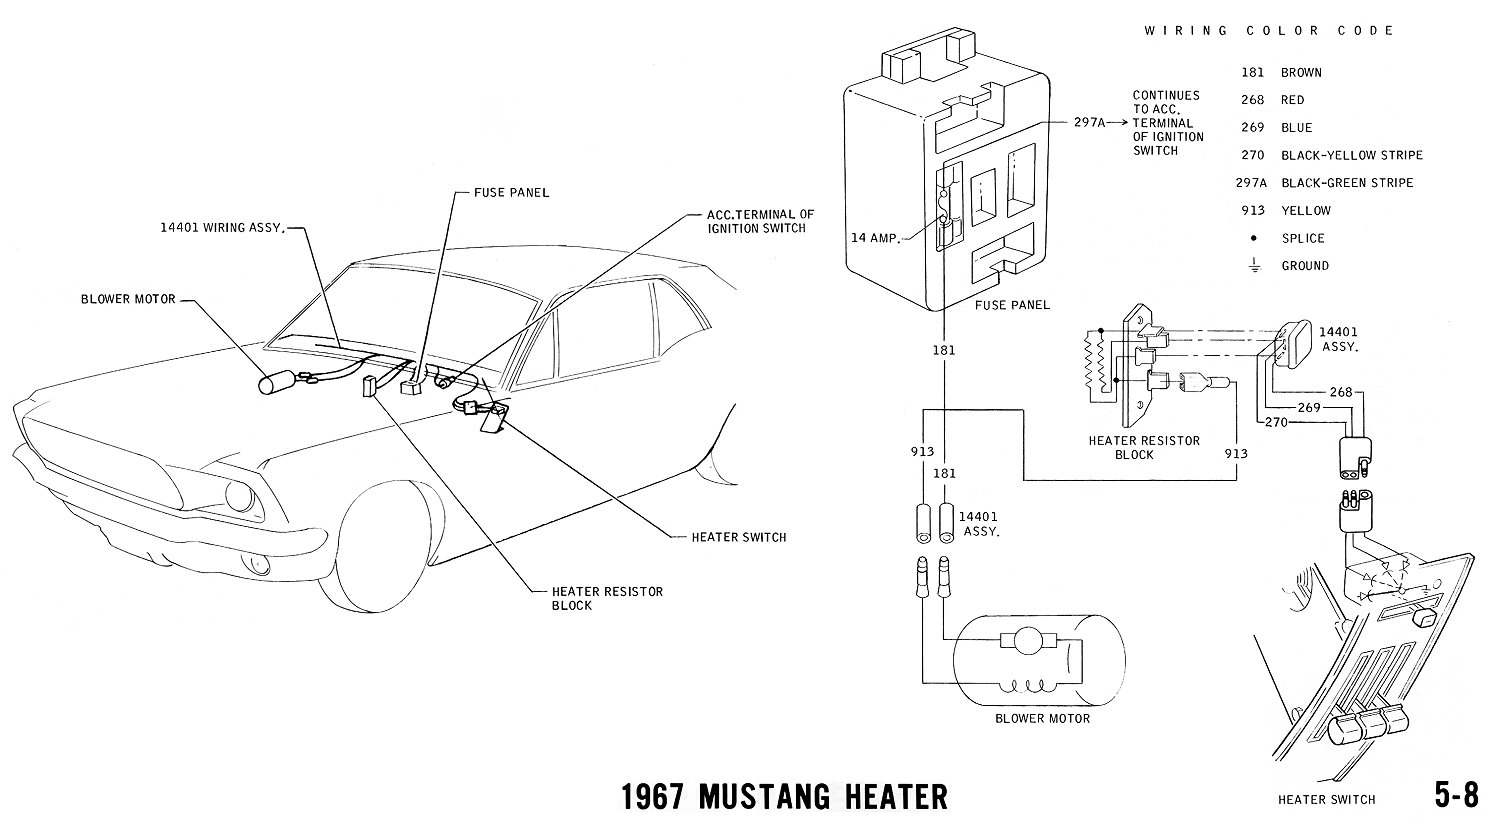 67heater 1967 mustang wiring and vacuum diagrams average joe restoration 67 mustang wiring diagram at alyssarenee.co